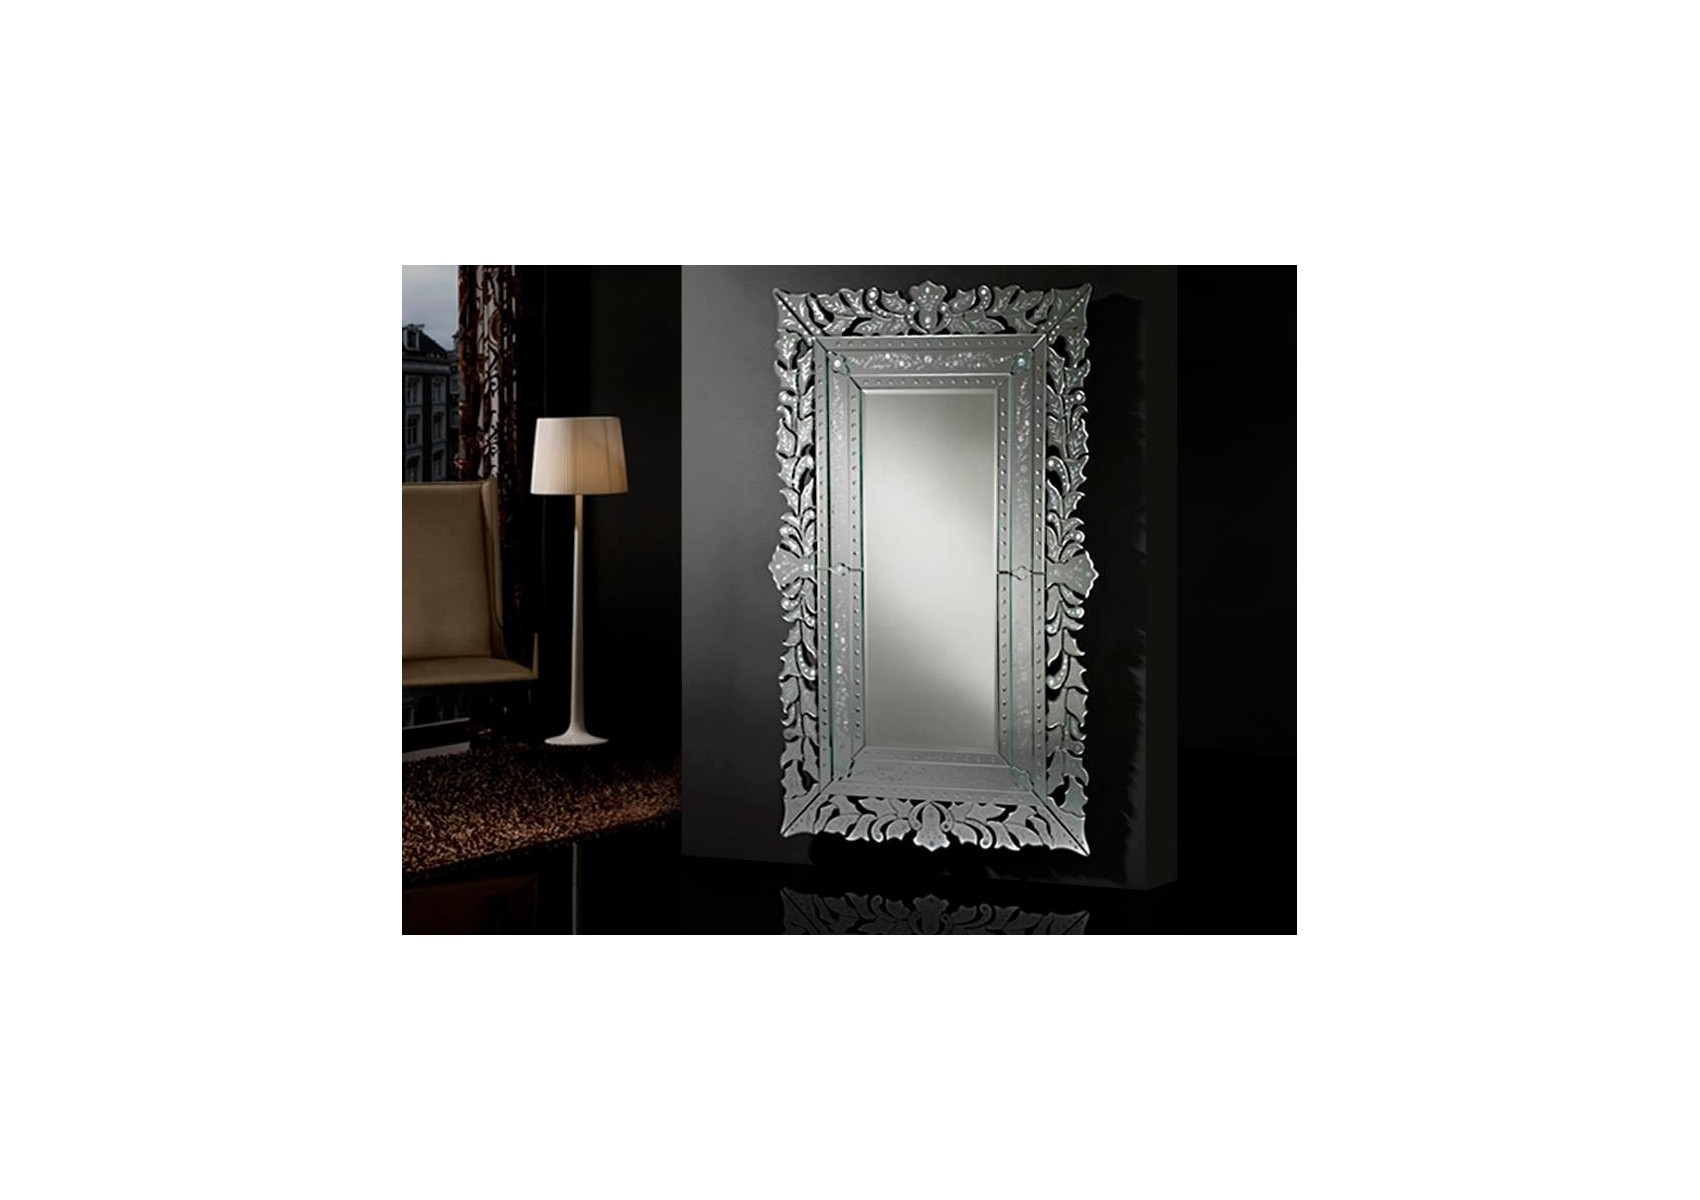 Miroir original design grand cleopatra deco schuller for Deco grand miroir